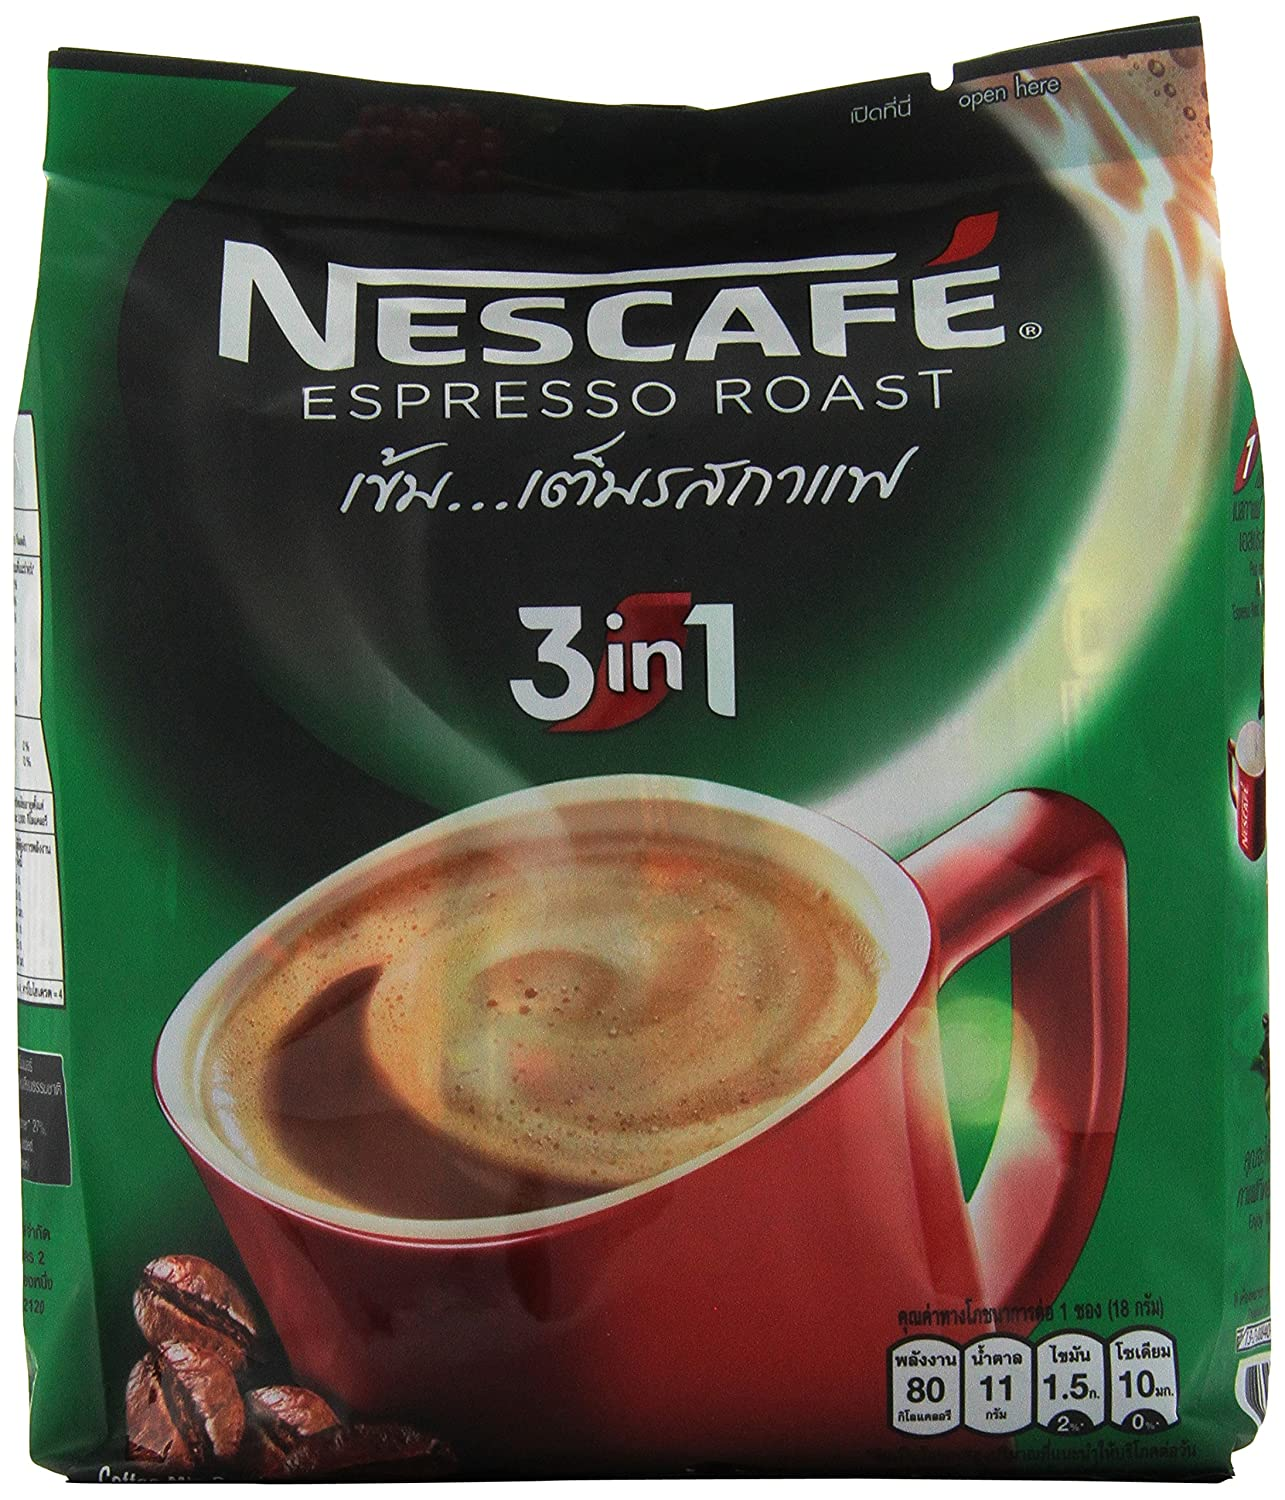 Nescafe Espresso Roast 3 in Instant 27-Count Coffee Louisville-Jefferson County Mall Popular shop is the lowest price challenge 1